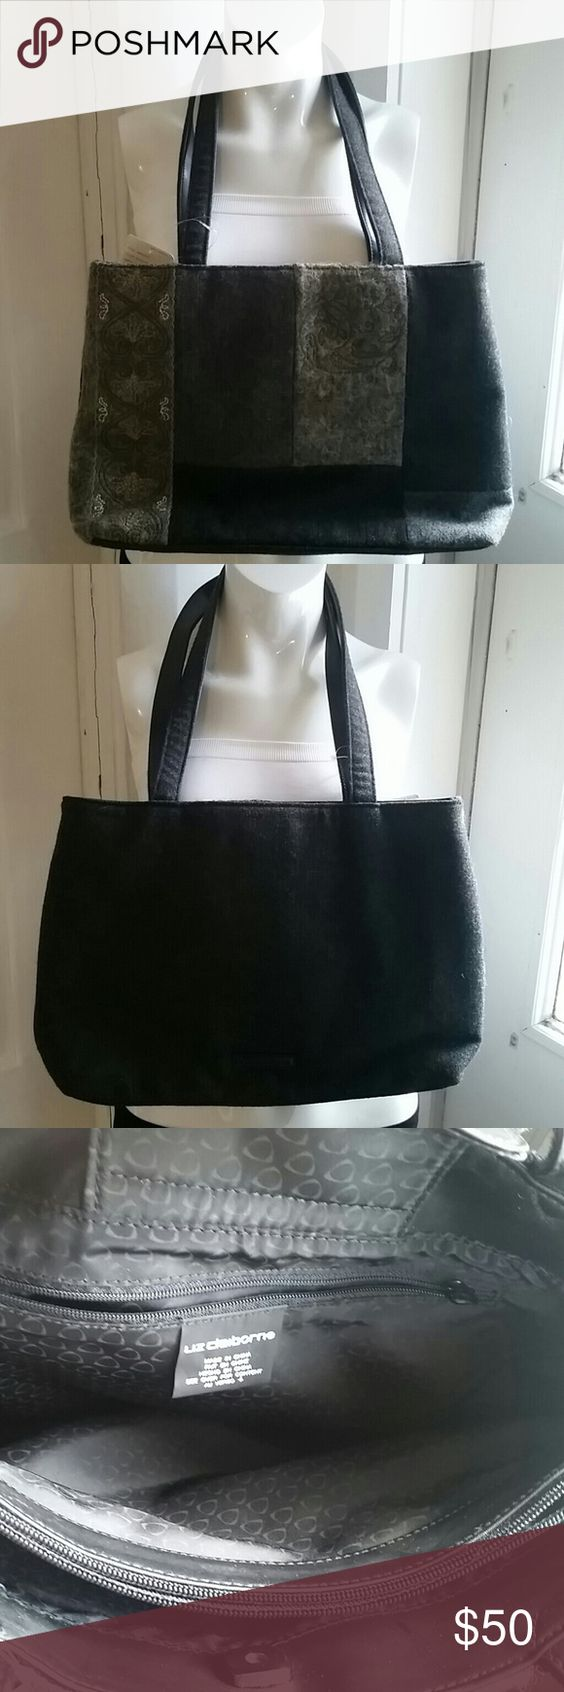 Liz Claiborne Nice, spacious, and in new condition with tags. Liz Claiborne Bags Totes